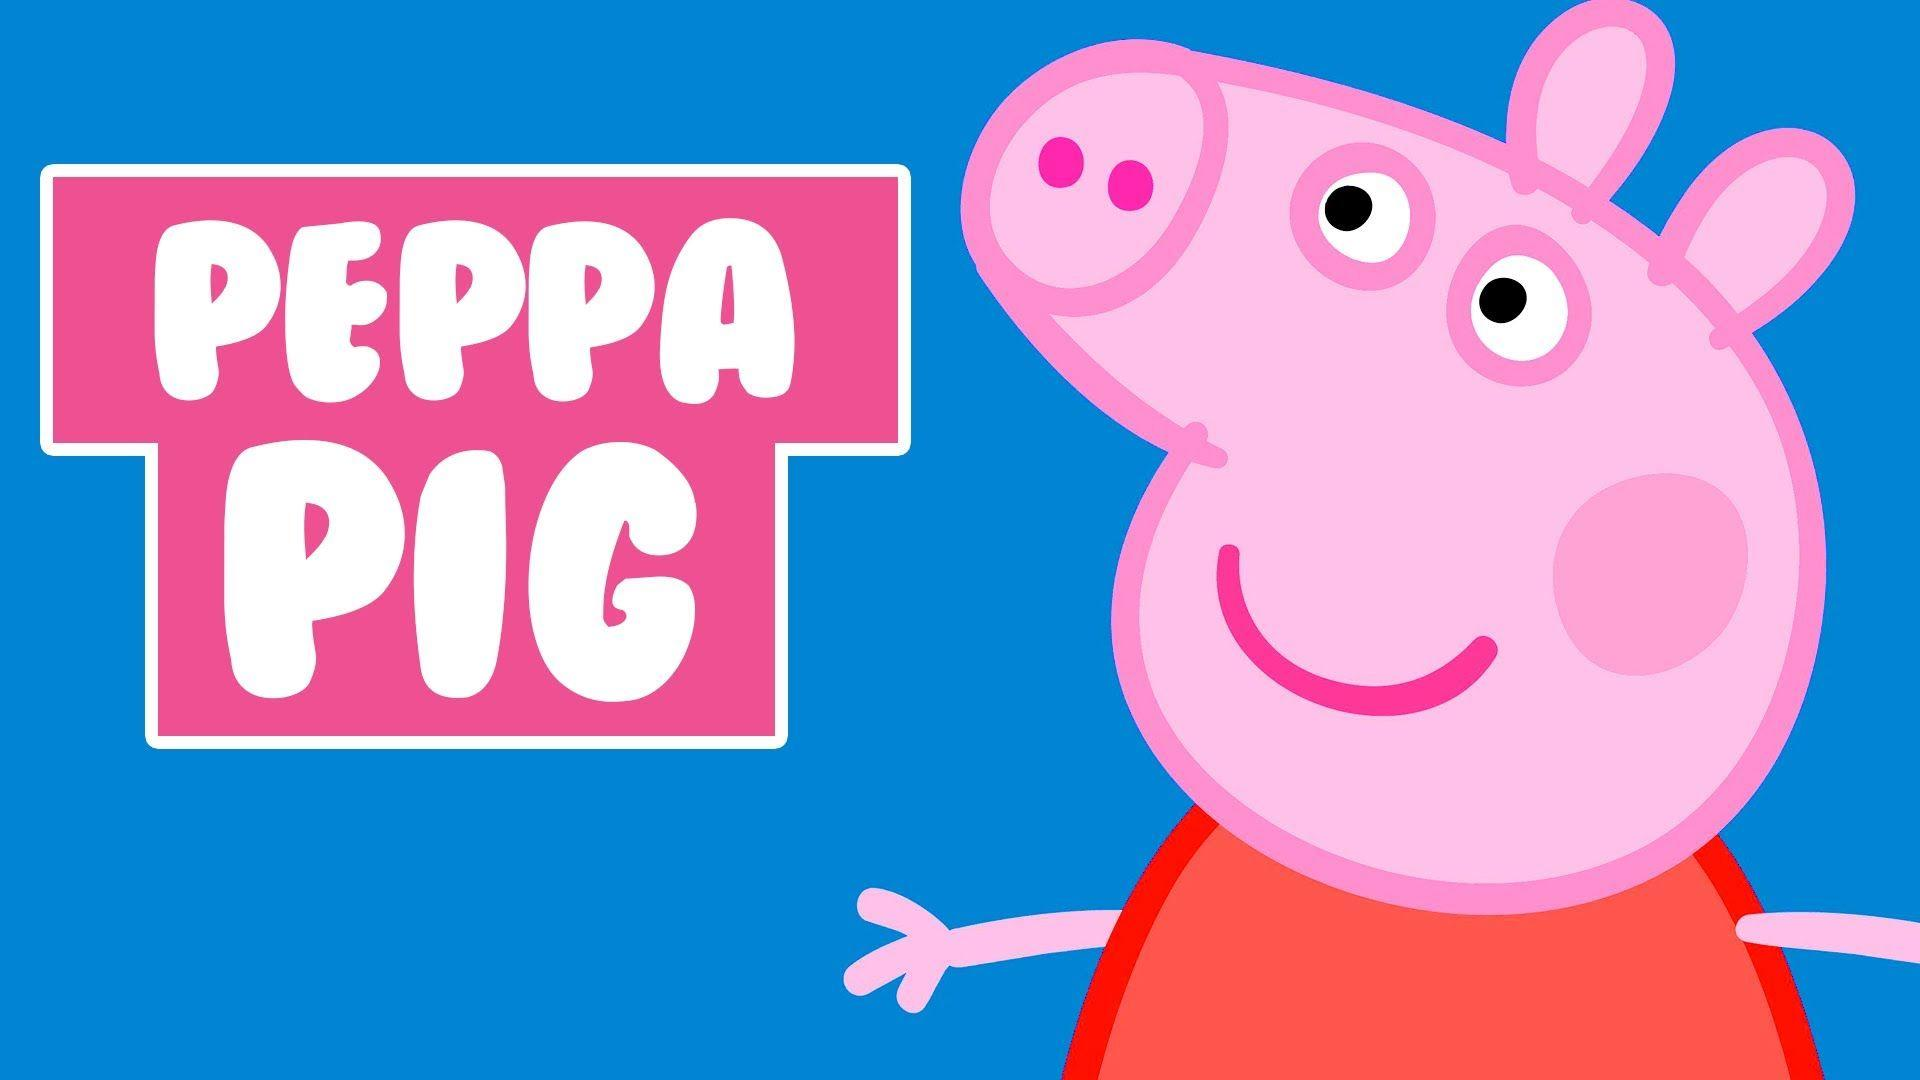 Peppa Pig Wallpapers Group (66)